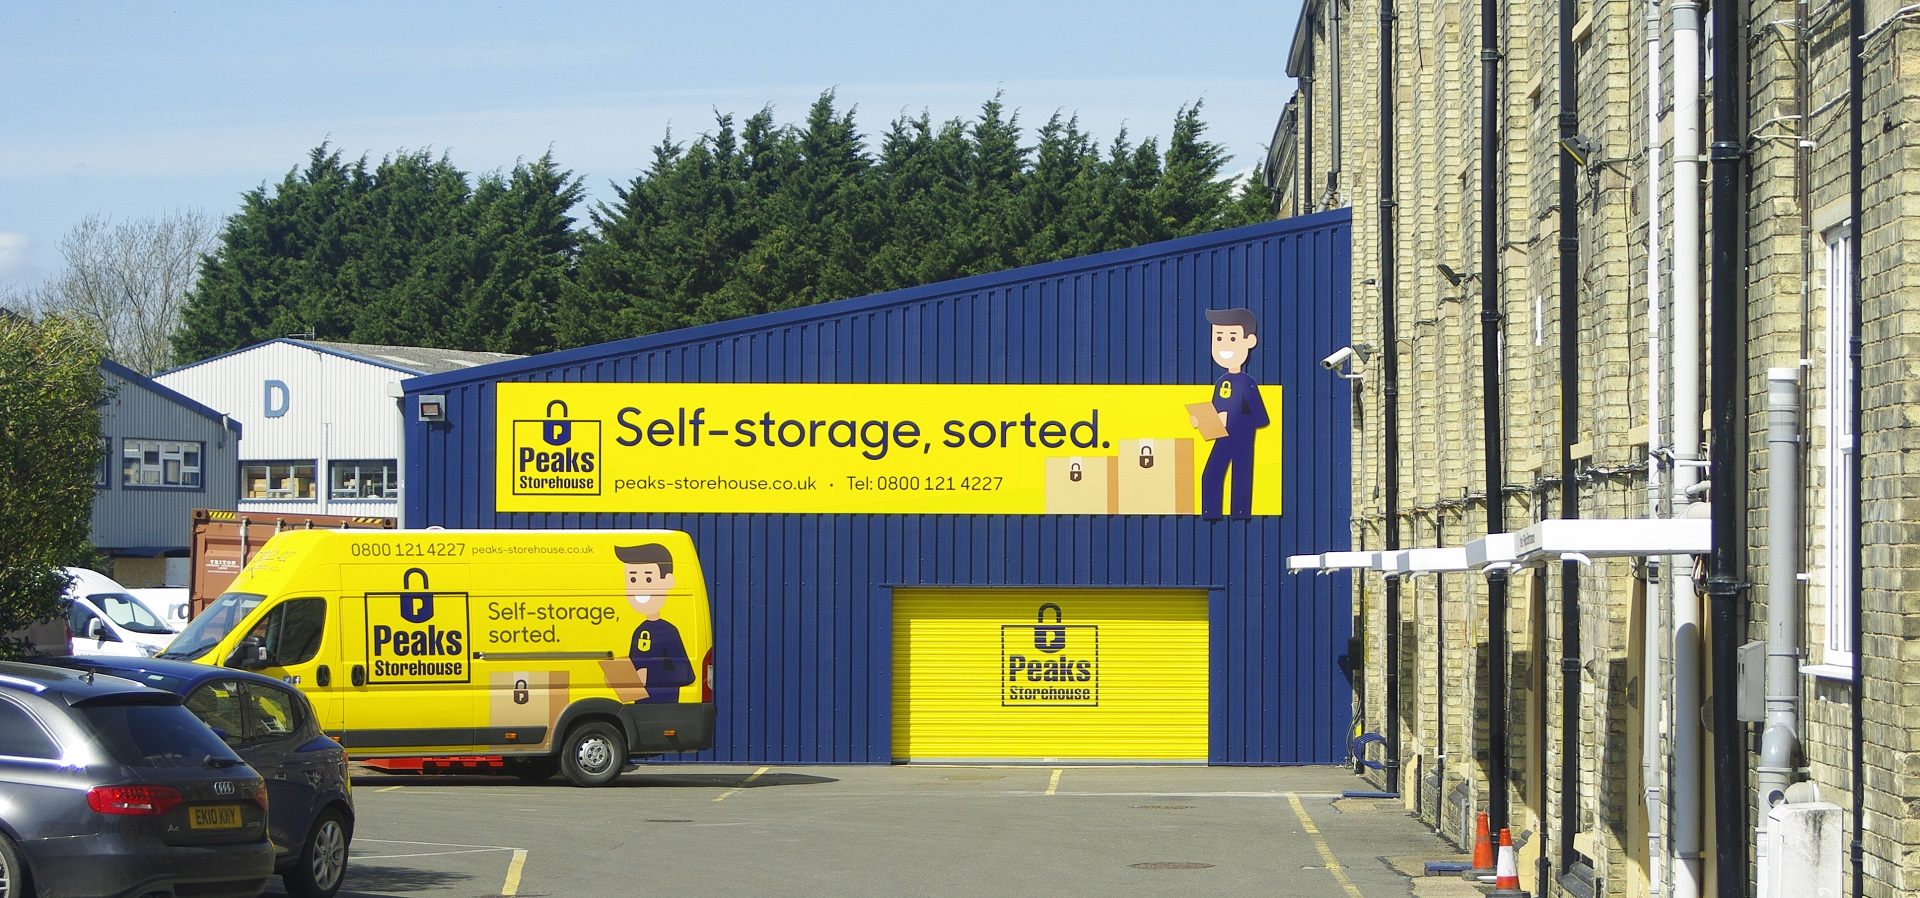 Peaks Storehouse Van Livery and Signage